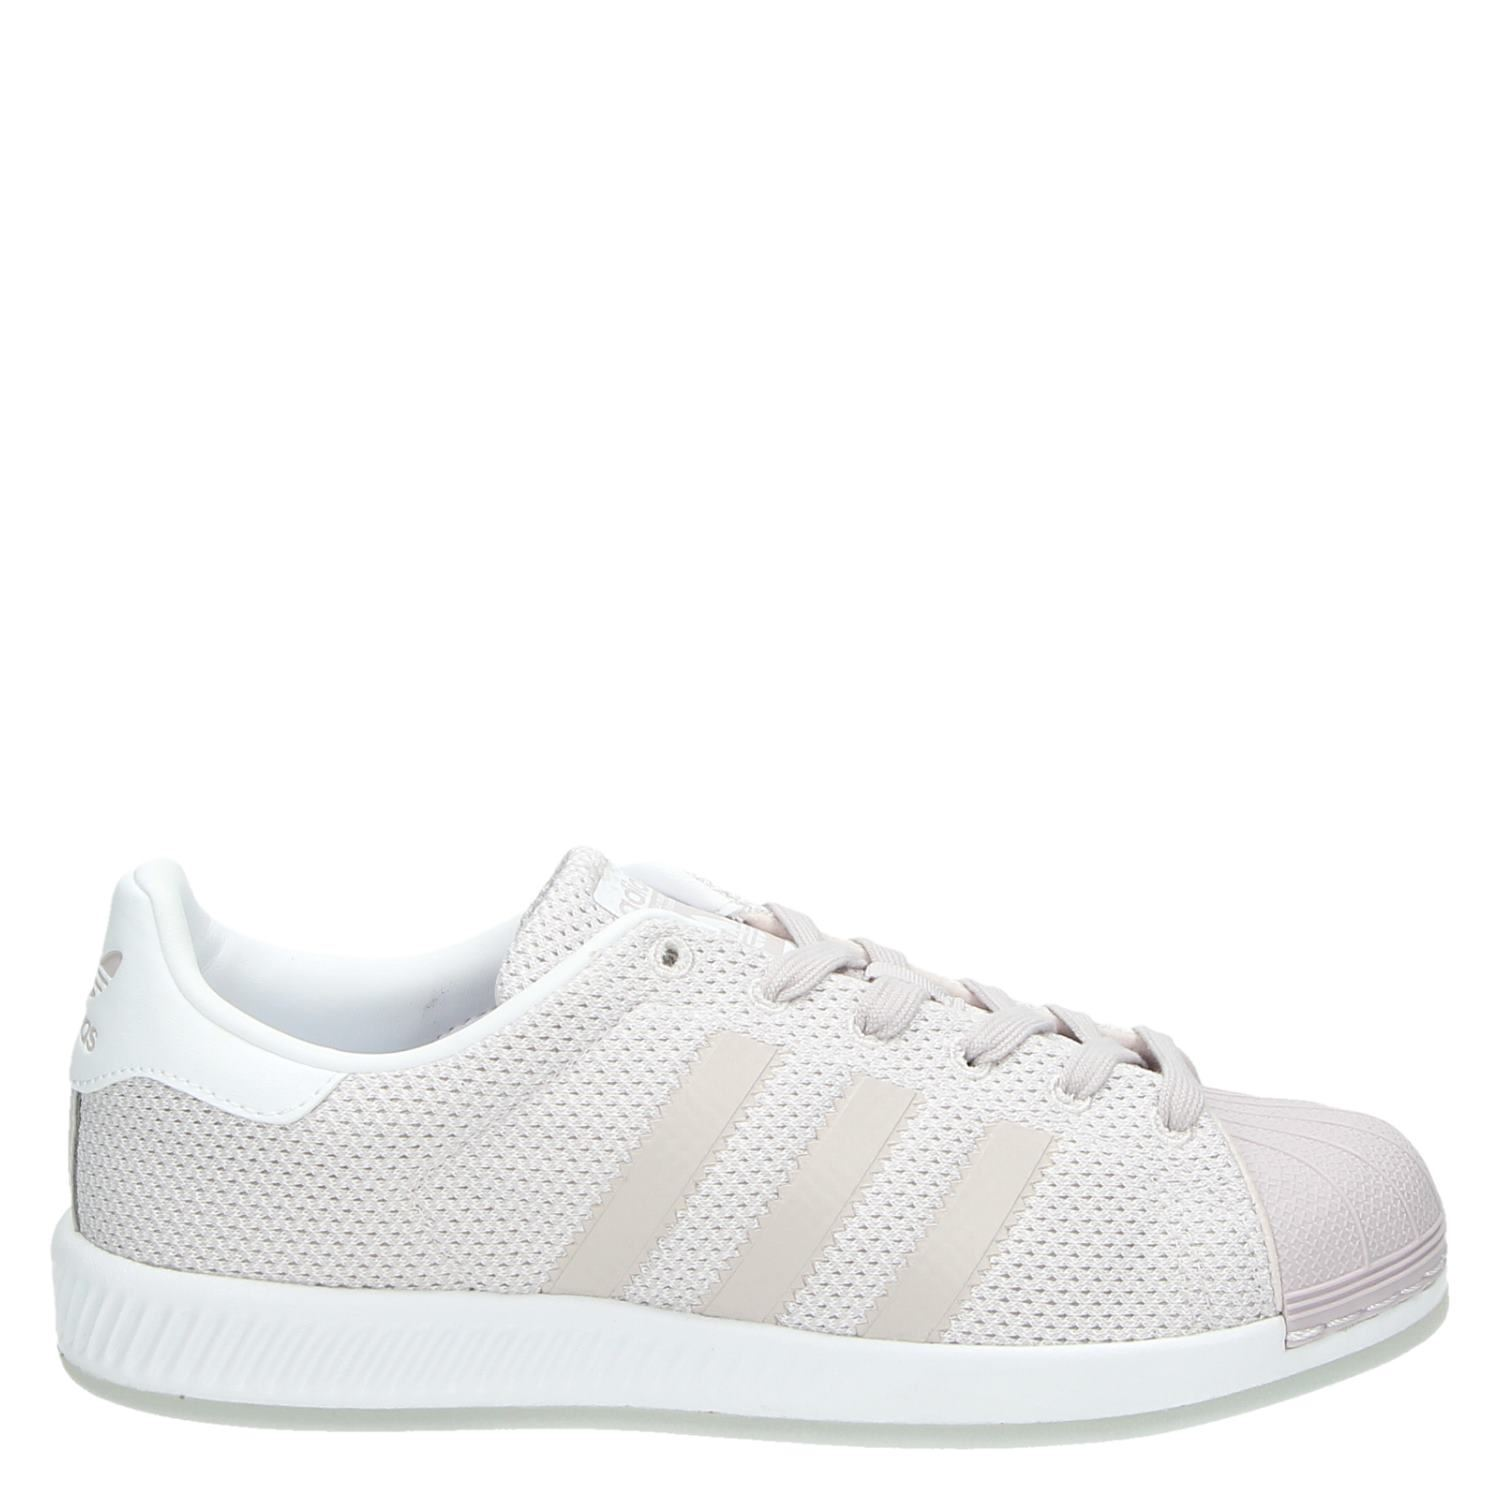 Adidas Superstar Bounce Sneakers Roze Dames Lage f7yYbv6g